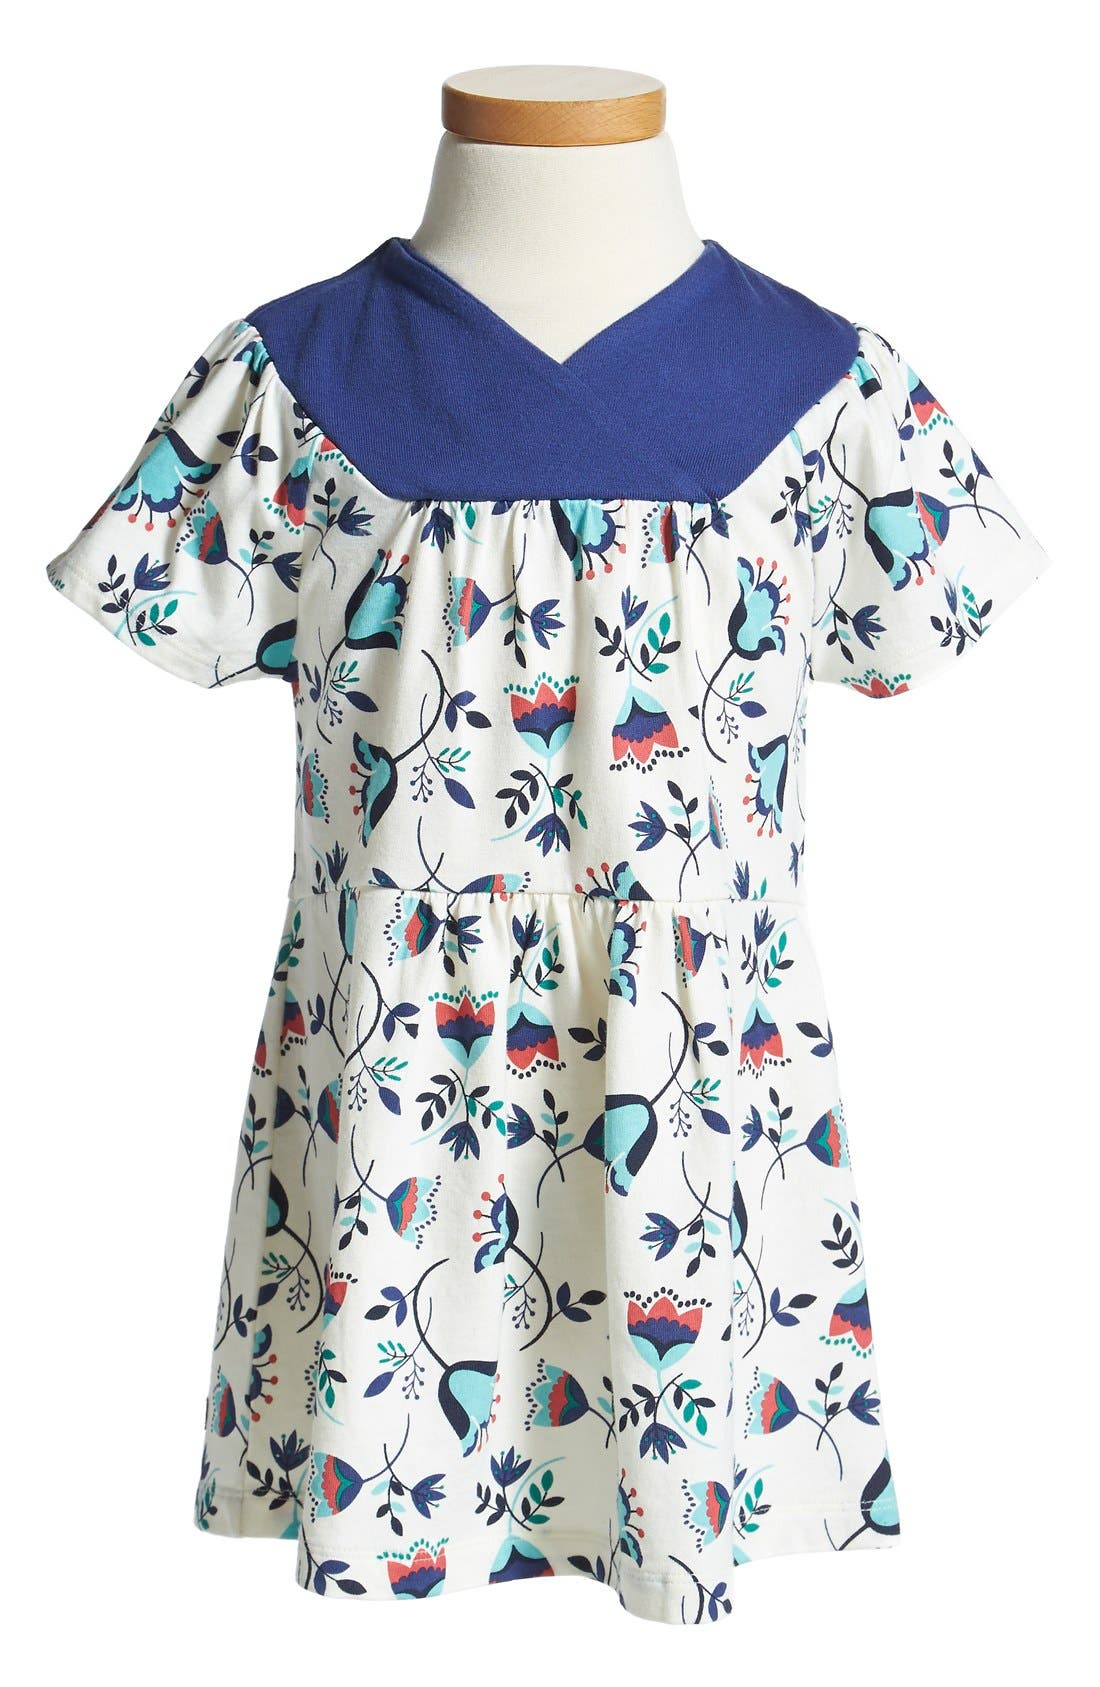 Alternate Image 1 Selected - Tea Collection 'Tulpenregen' Faux-Wrap Dress (Baby Girls)